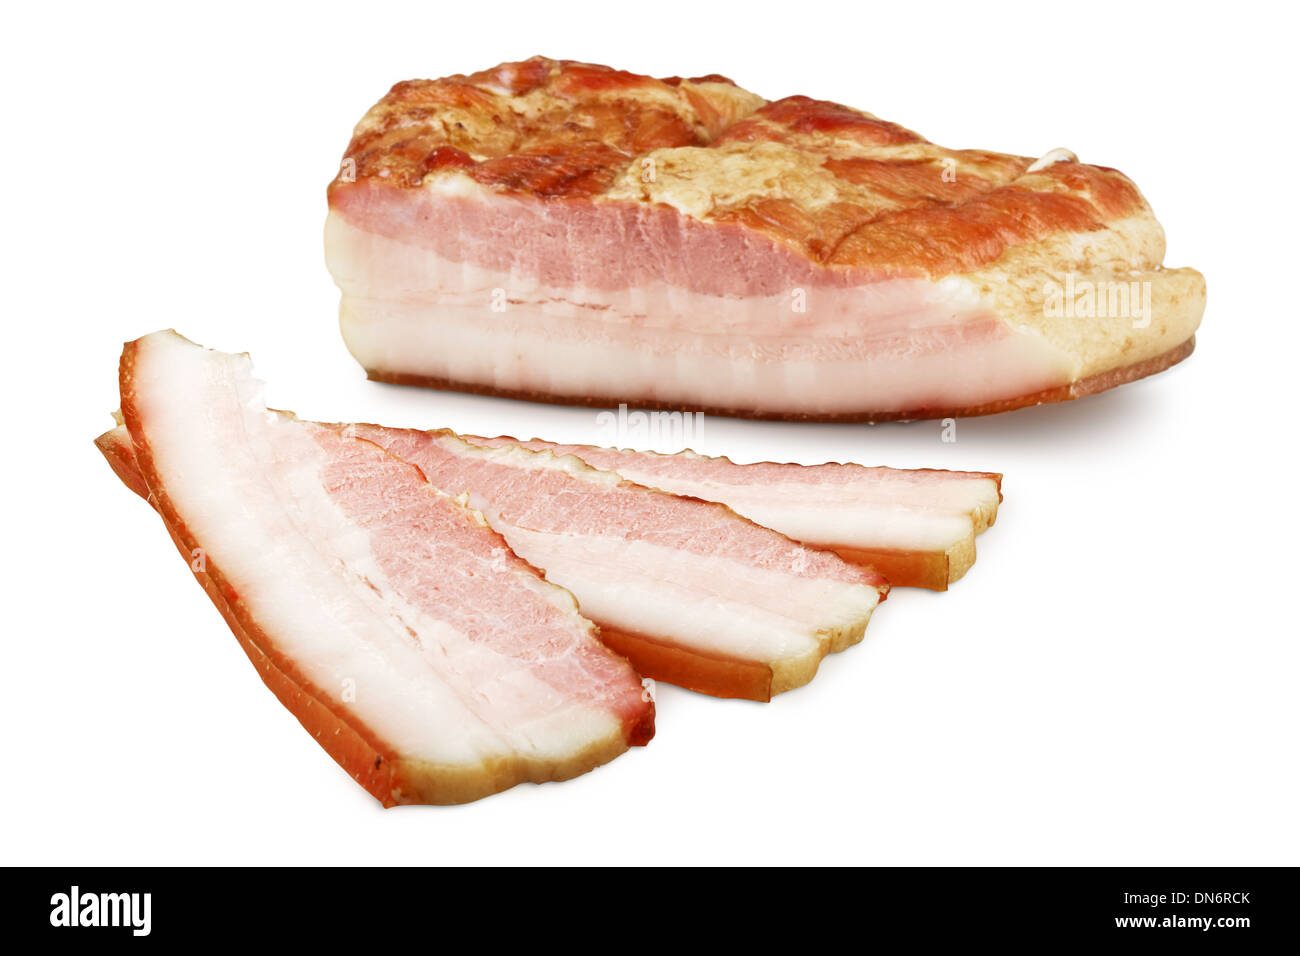 bacon section isolated. Focus on the slices - Stock Image